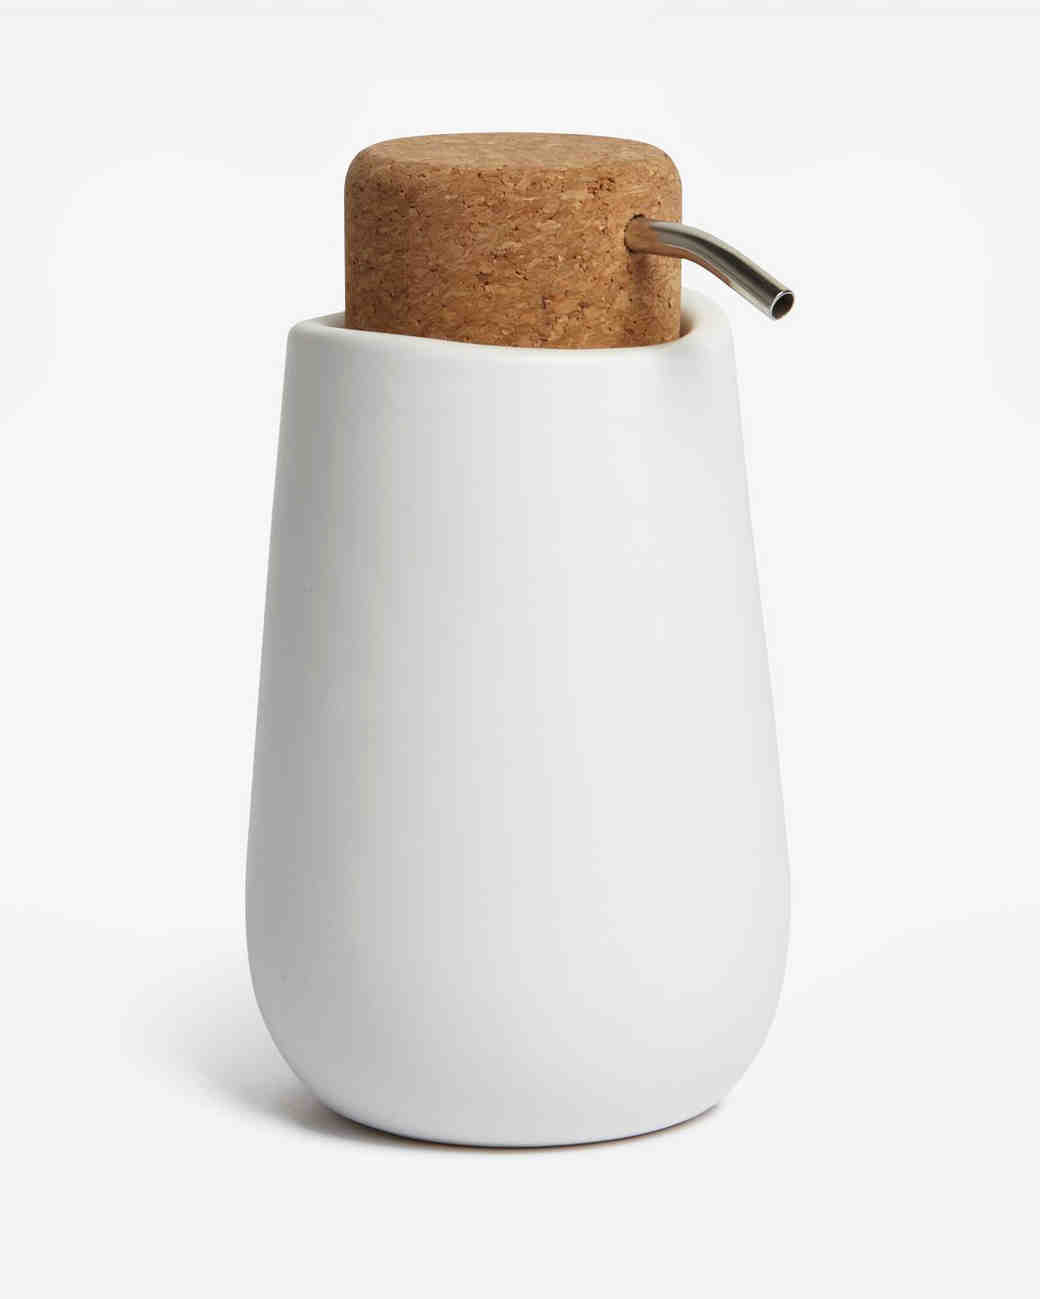 cork soap dispenser